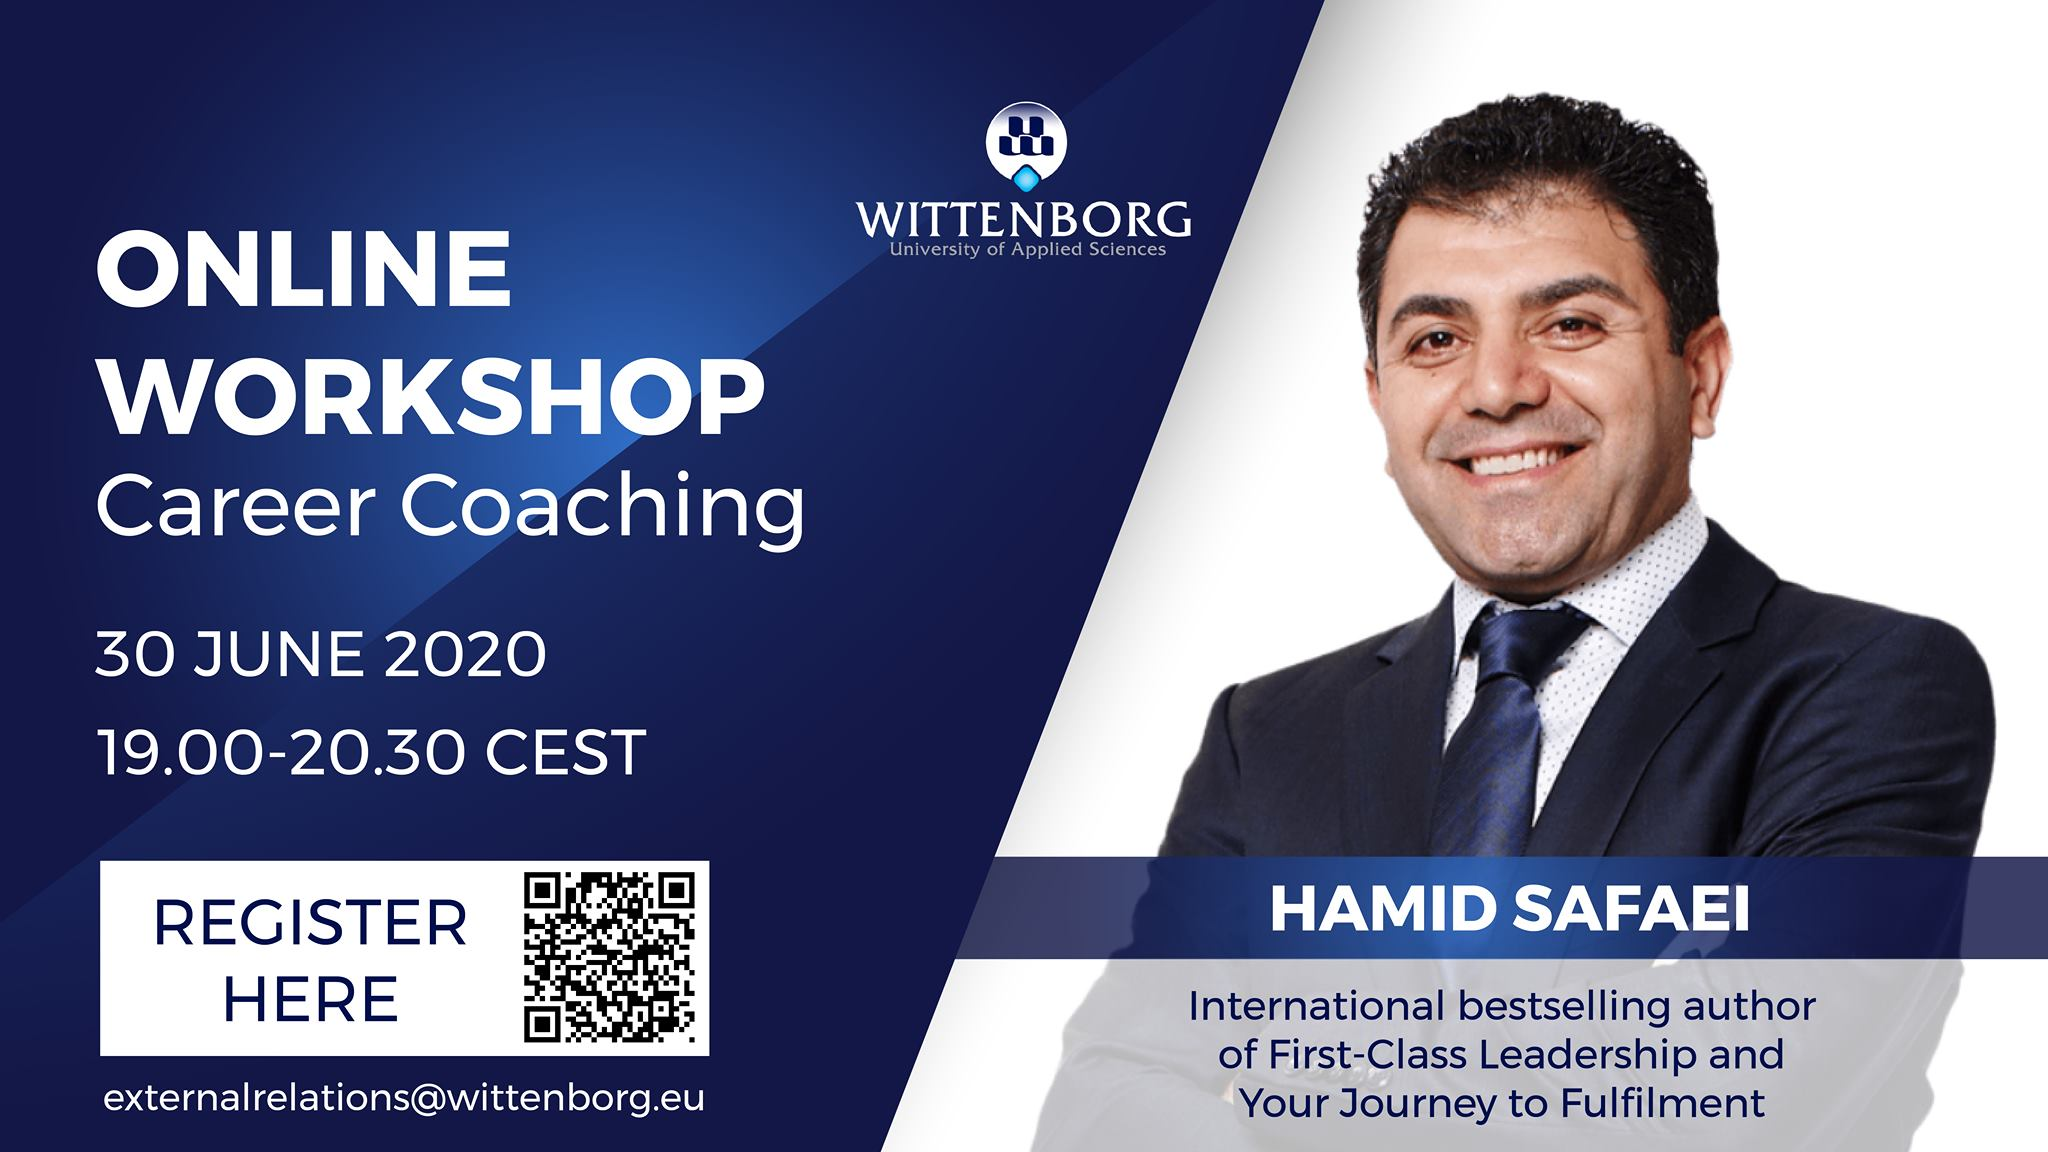 Online Workshop - Career Coaching